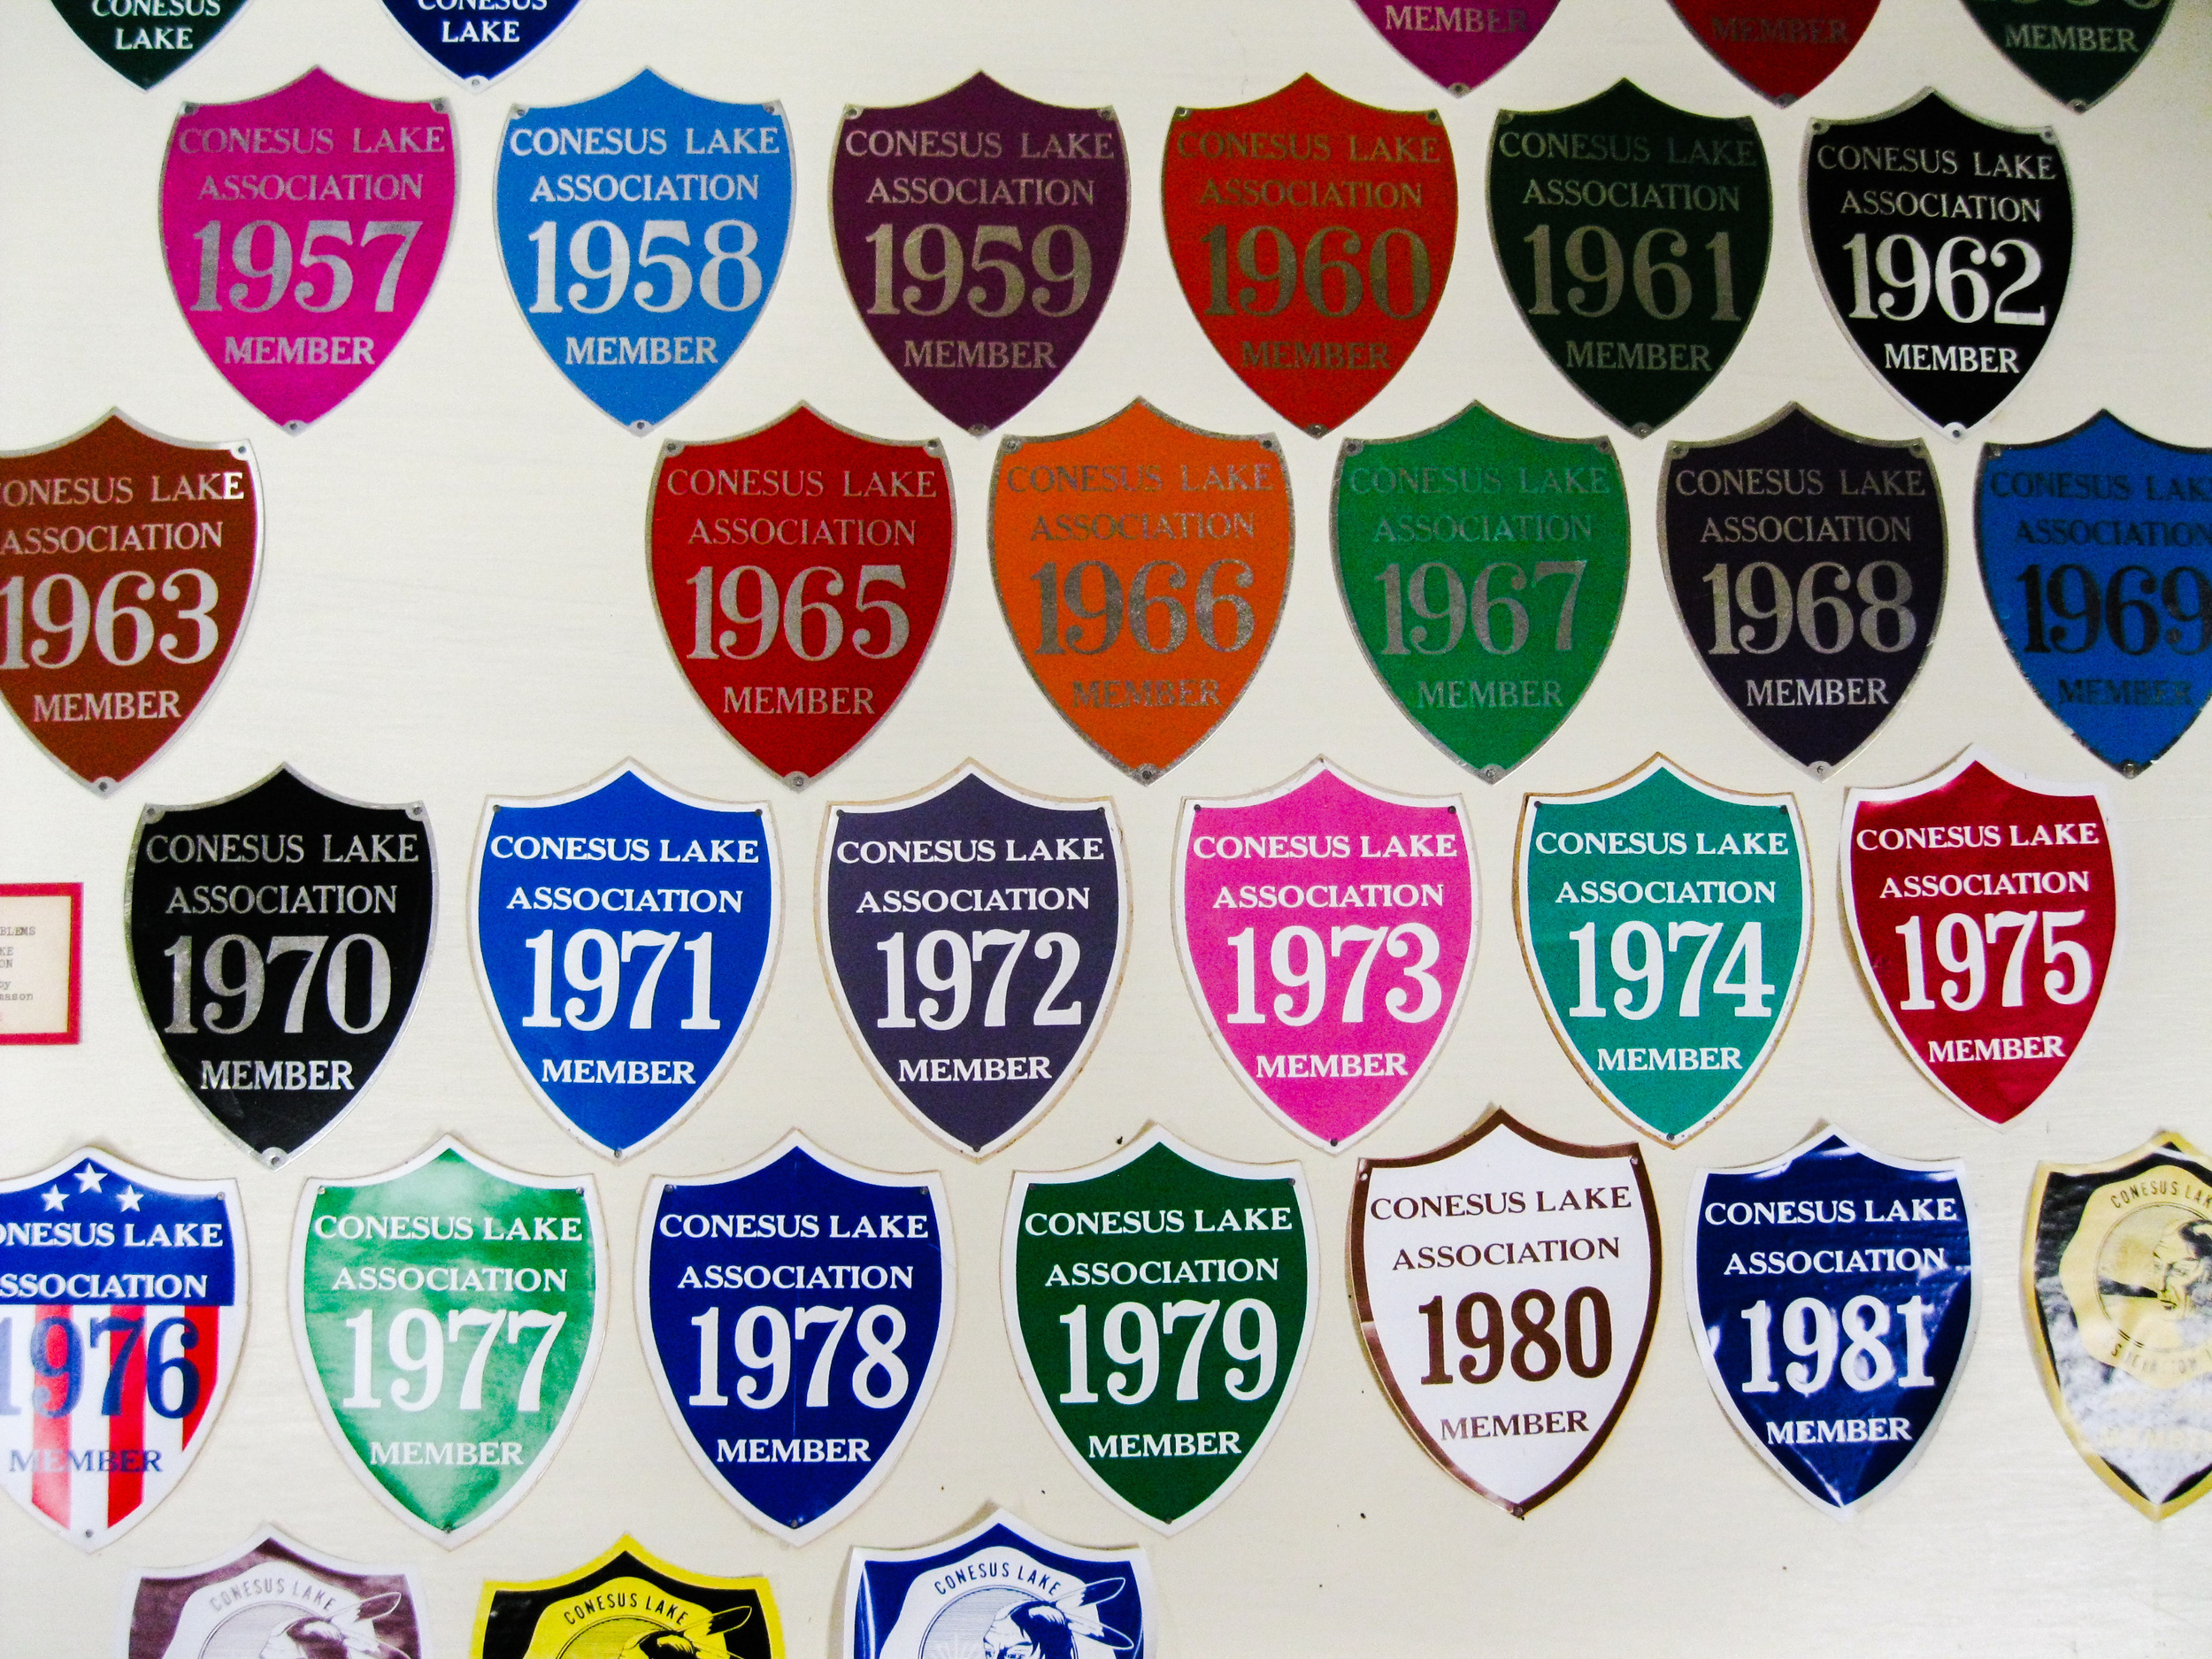 """These decals from 1950-1985 honor the history of the Conesus Lake Association, founded in 1932 as the Conesus Lake Cottagers' Association.   Their aim is to """"promote the health, safety, and welfare of the residents, both permanent and temporary, of the area community known as Conesus Lake, Livingston County, New York. The Association encourages all residents to proudly display Conesus decals """"to show you care for the future of our Lake.""""   Currently, Conesus Lake serves as the water supply for almost one fourth, or over 18,000 residents of Livingston County."""